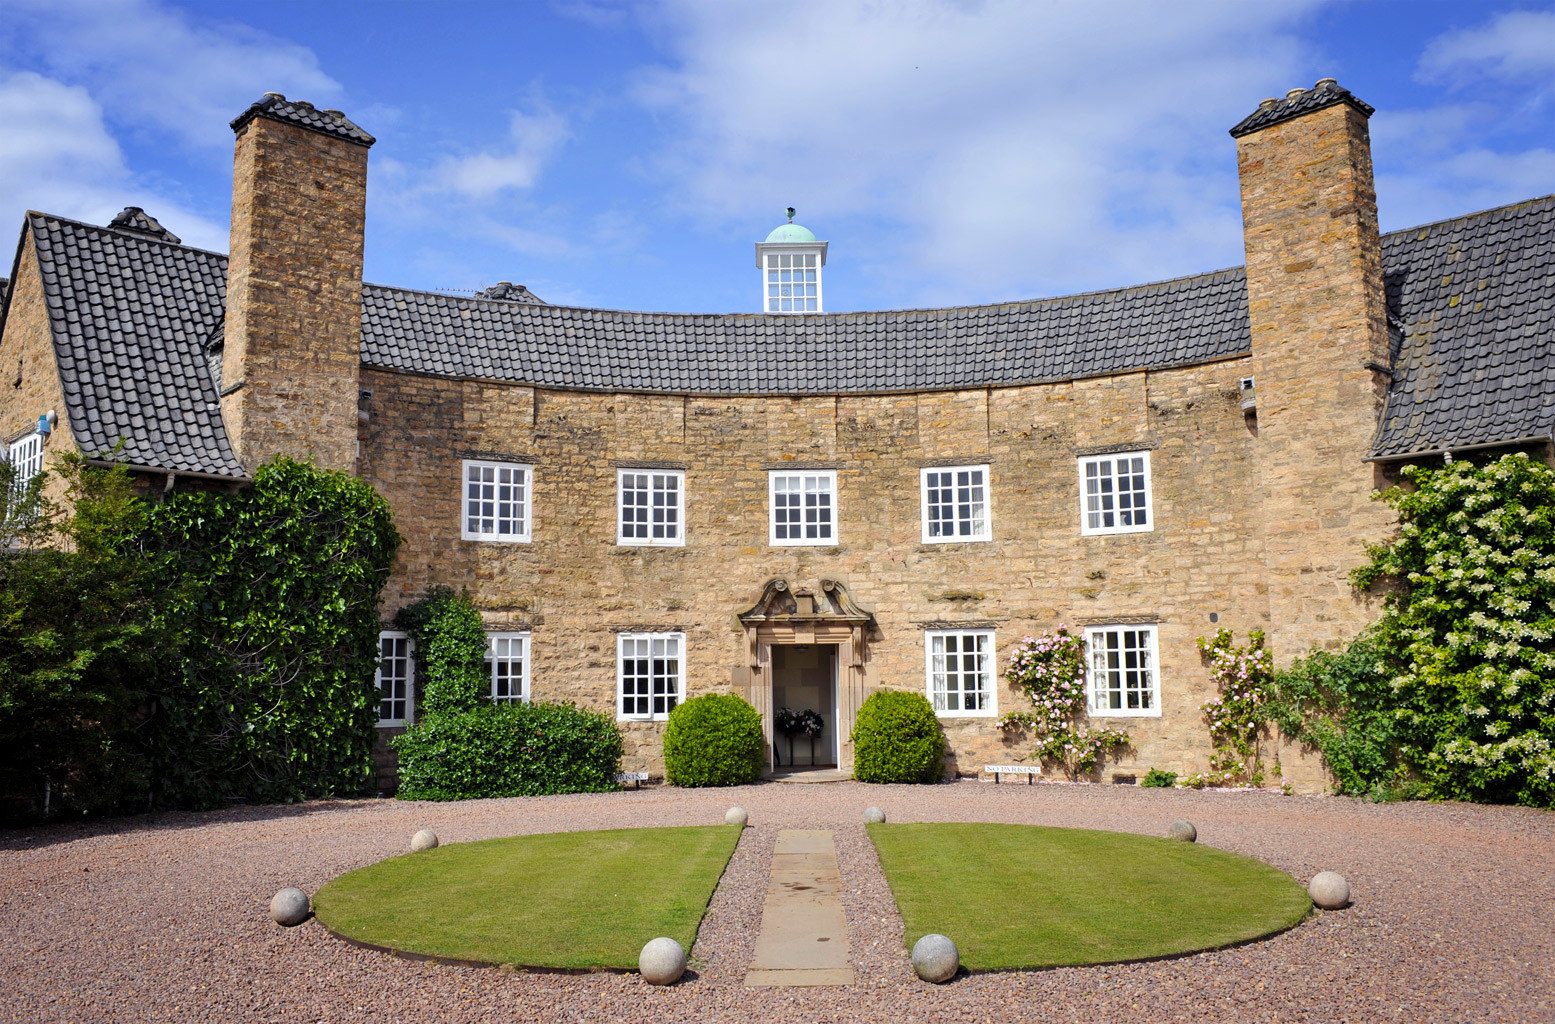 Country Exterior Golf Historic grass building stately home château property stone Architecture castle old manor house mansion lawn palace